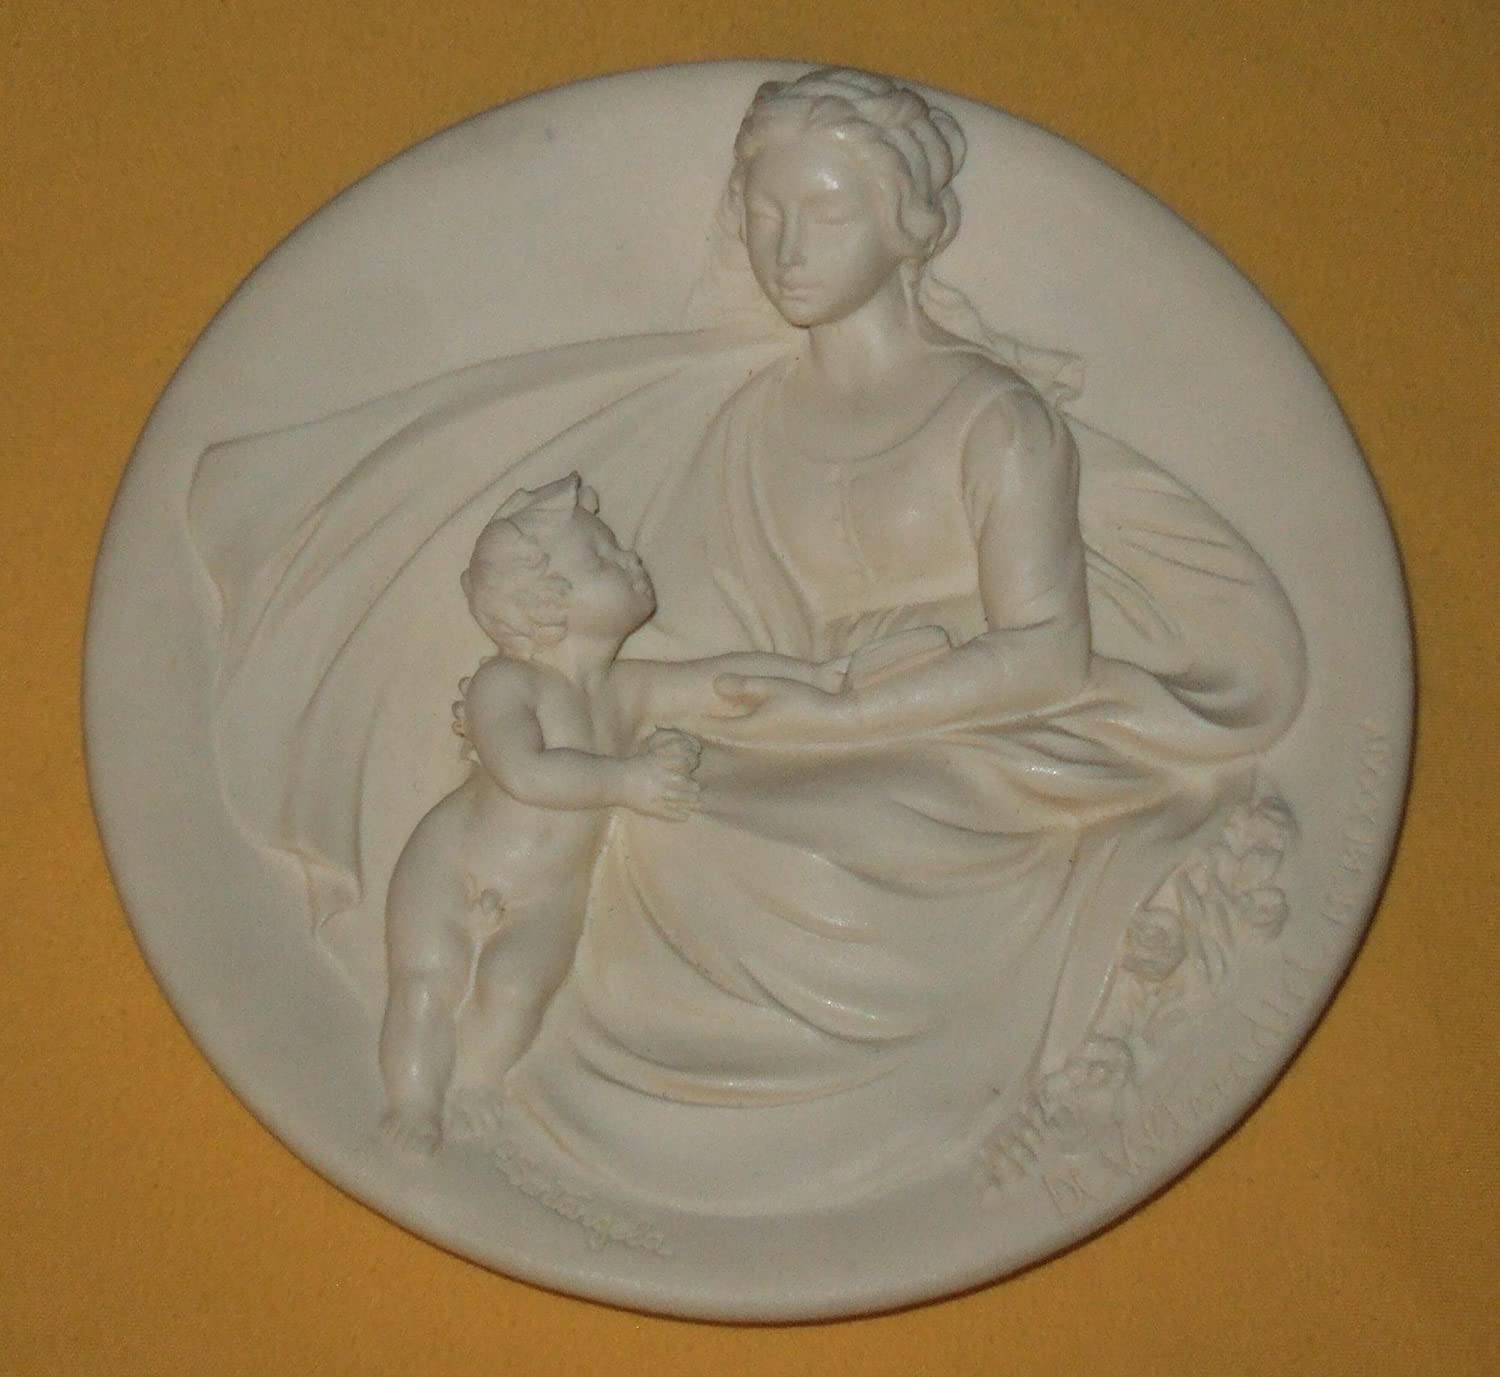 Amazon Com Bradford Exchange The From The Madonne Viventi Living Madonnas Collection Madonna Tenera By Alberto Santangela And Issued In Ivory Alabaster Limited Edition Decorative Plate Home Kitchen